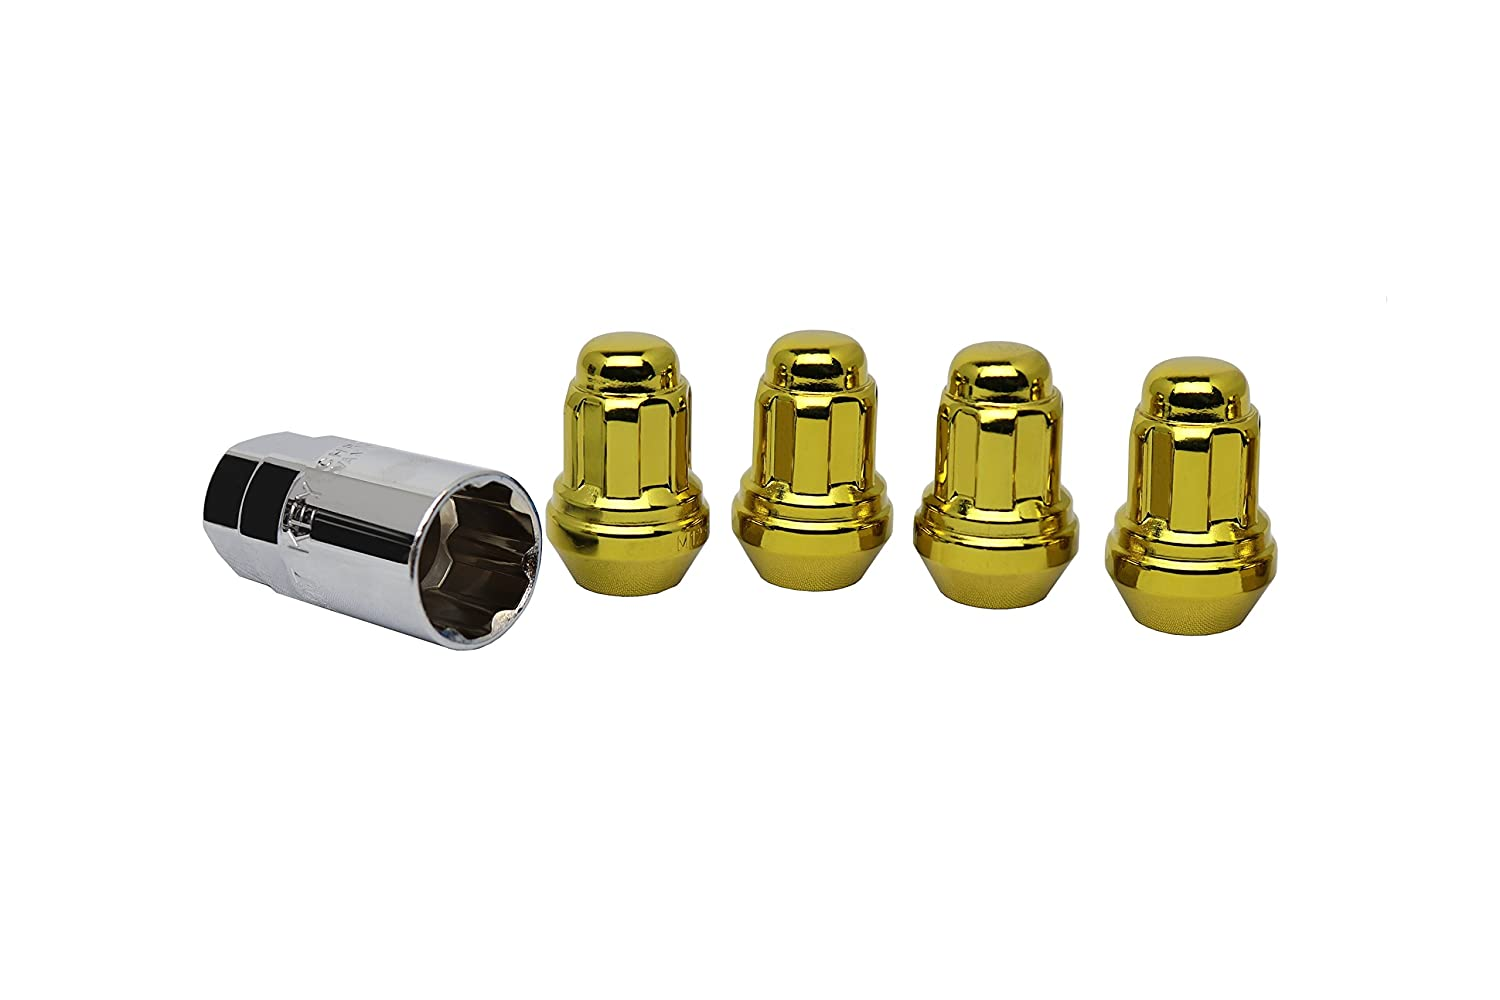 White Knight 40700SGDT GoldWheel Lock, 4 Pack